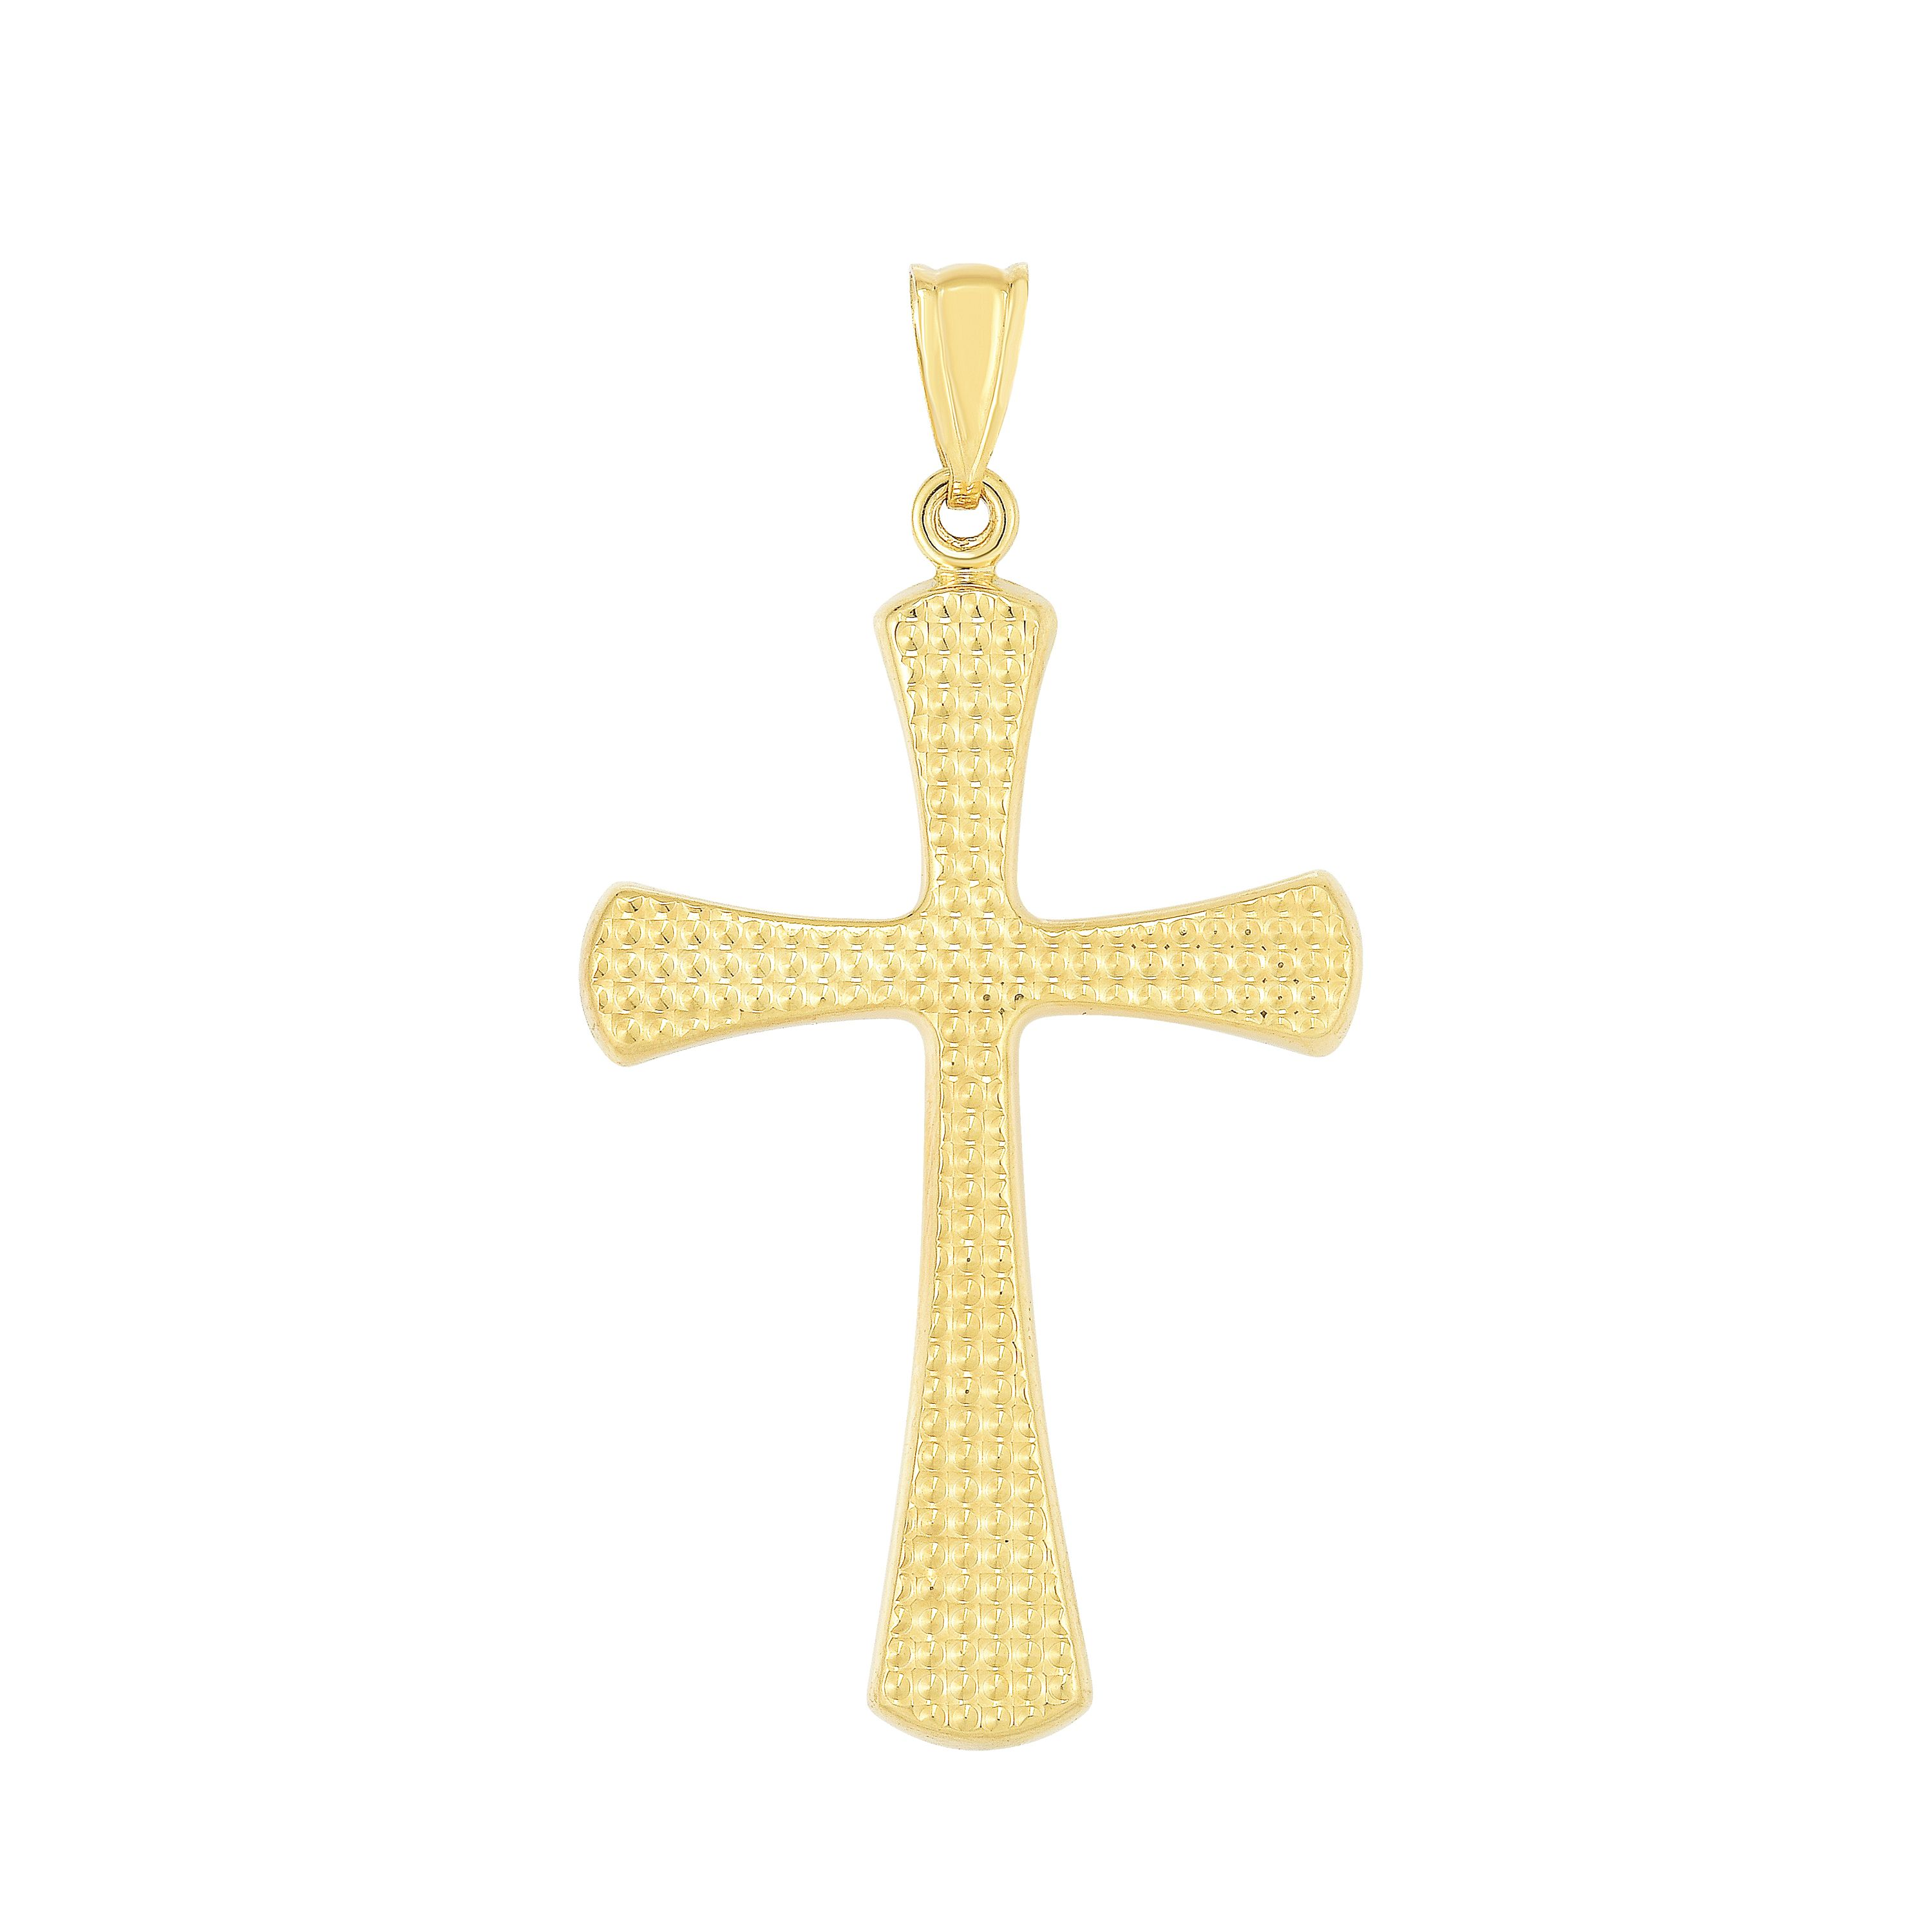 14K Yellow Gold Pendant Grogan Jewelers Florence, AL